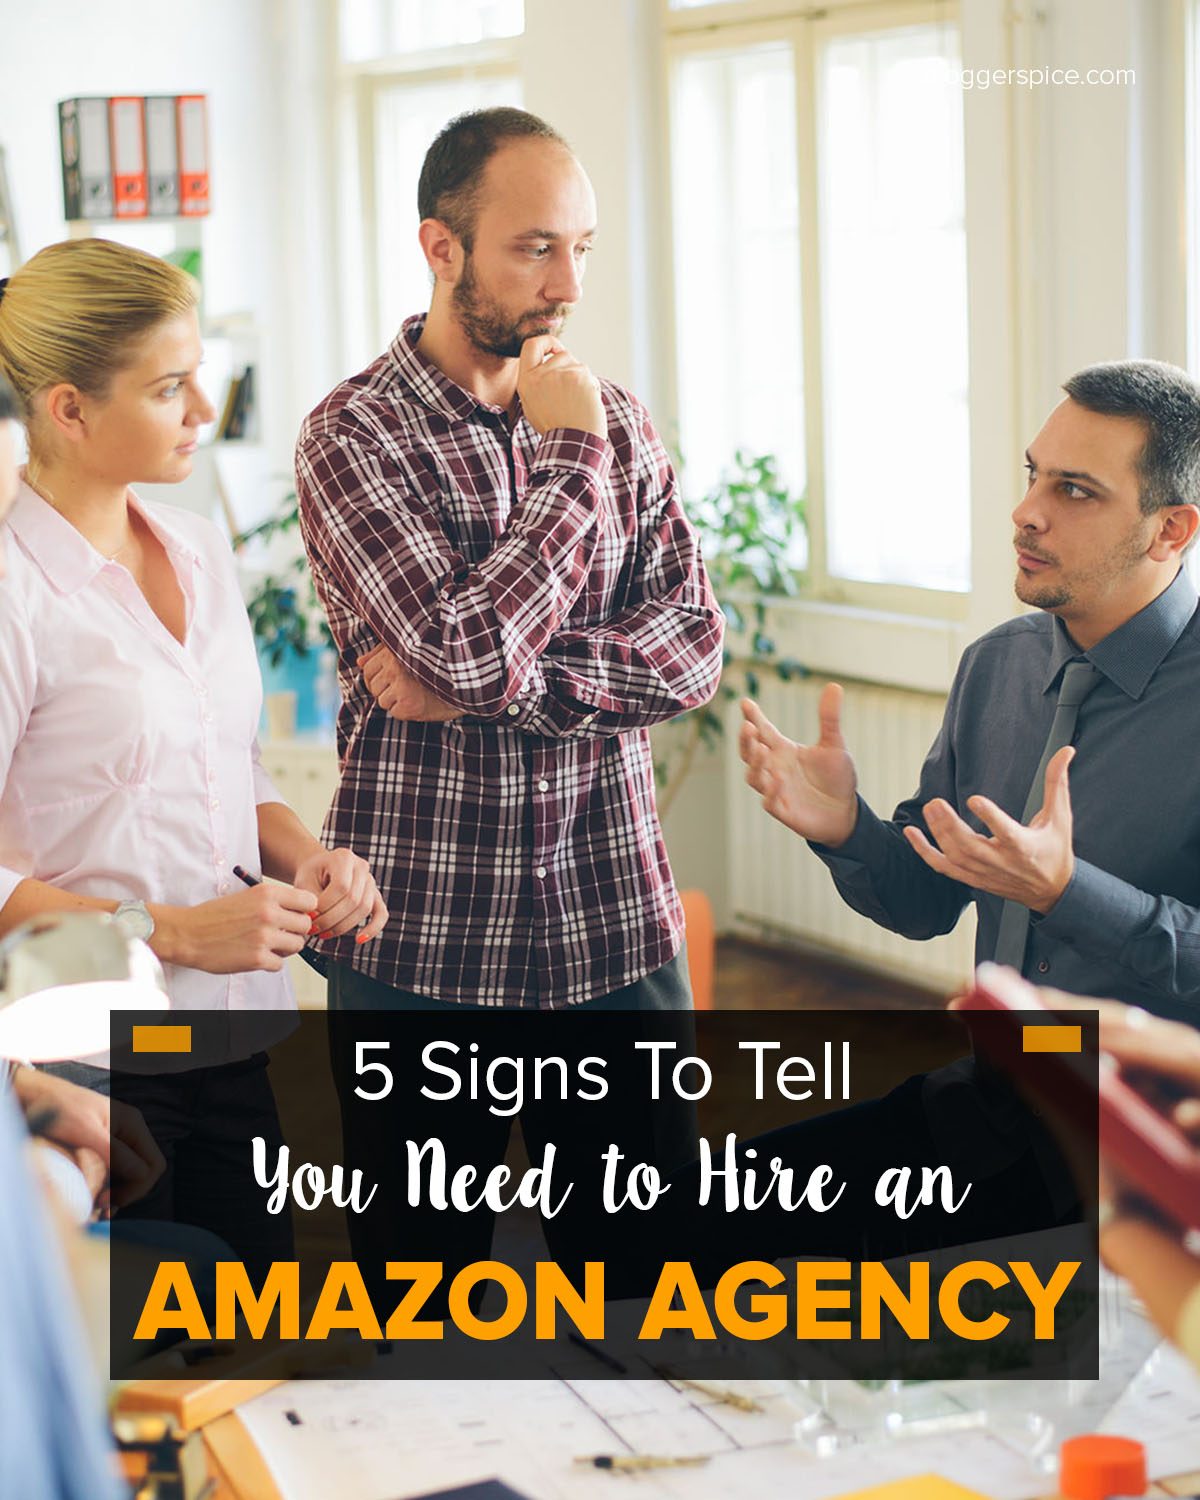 5 Signs to Tell You Need to Hire an Amazon Agency